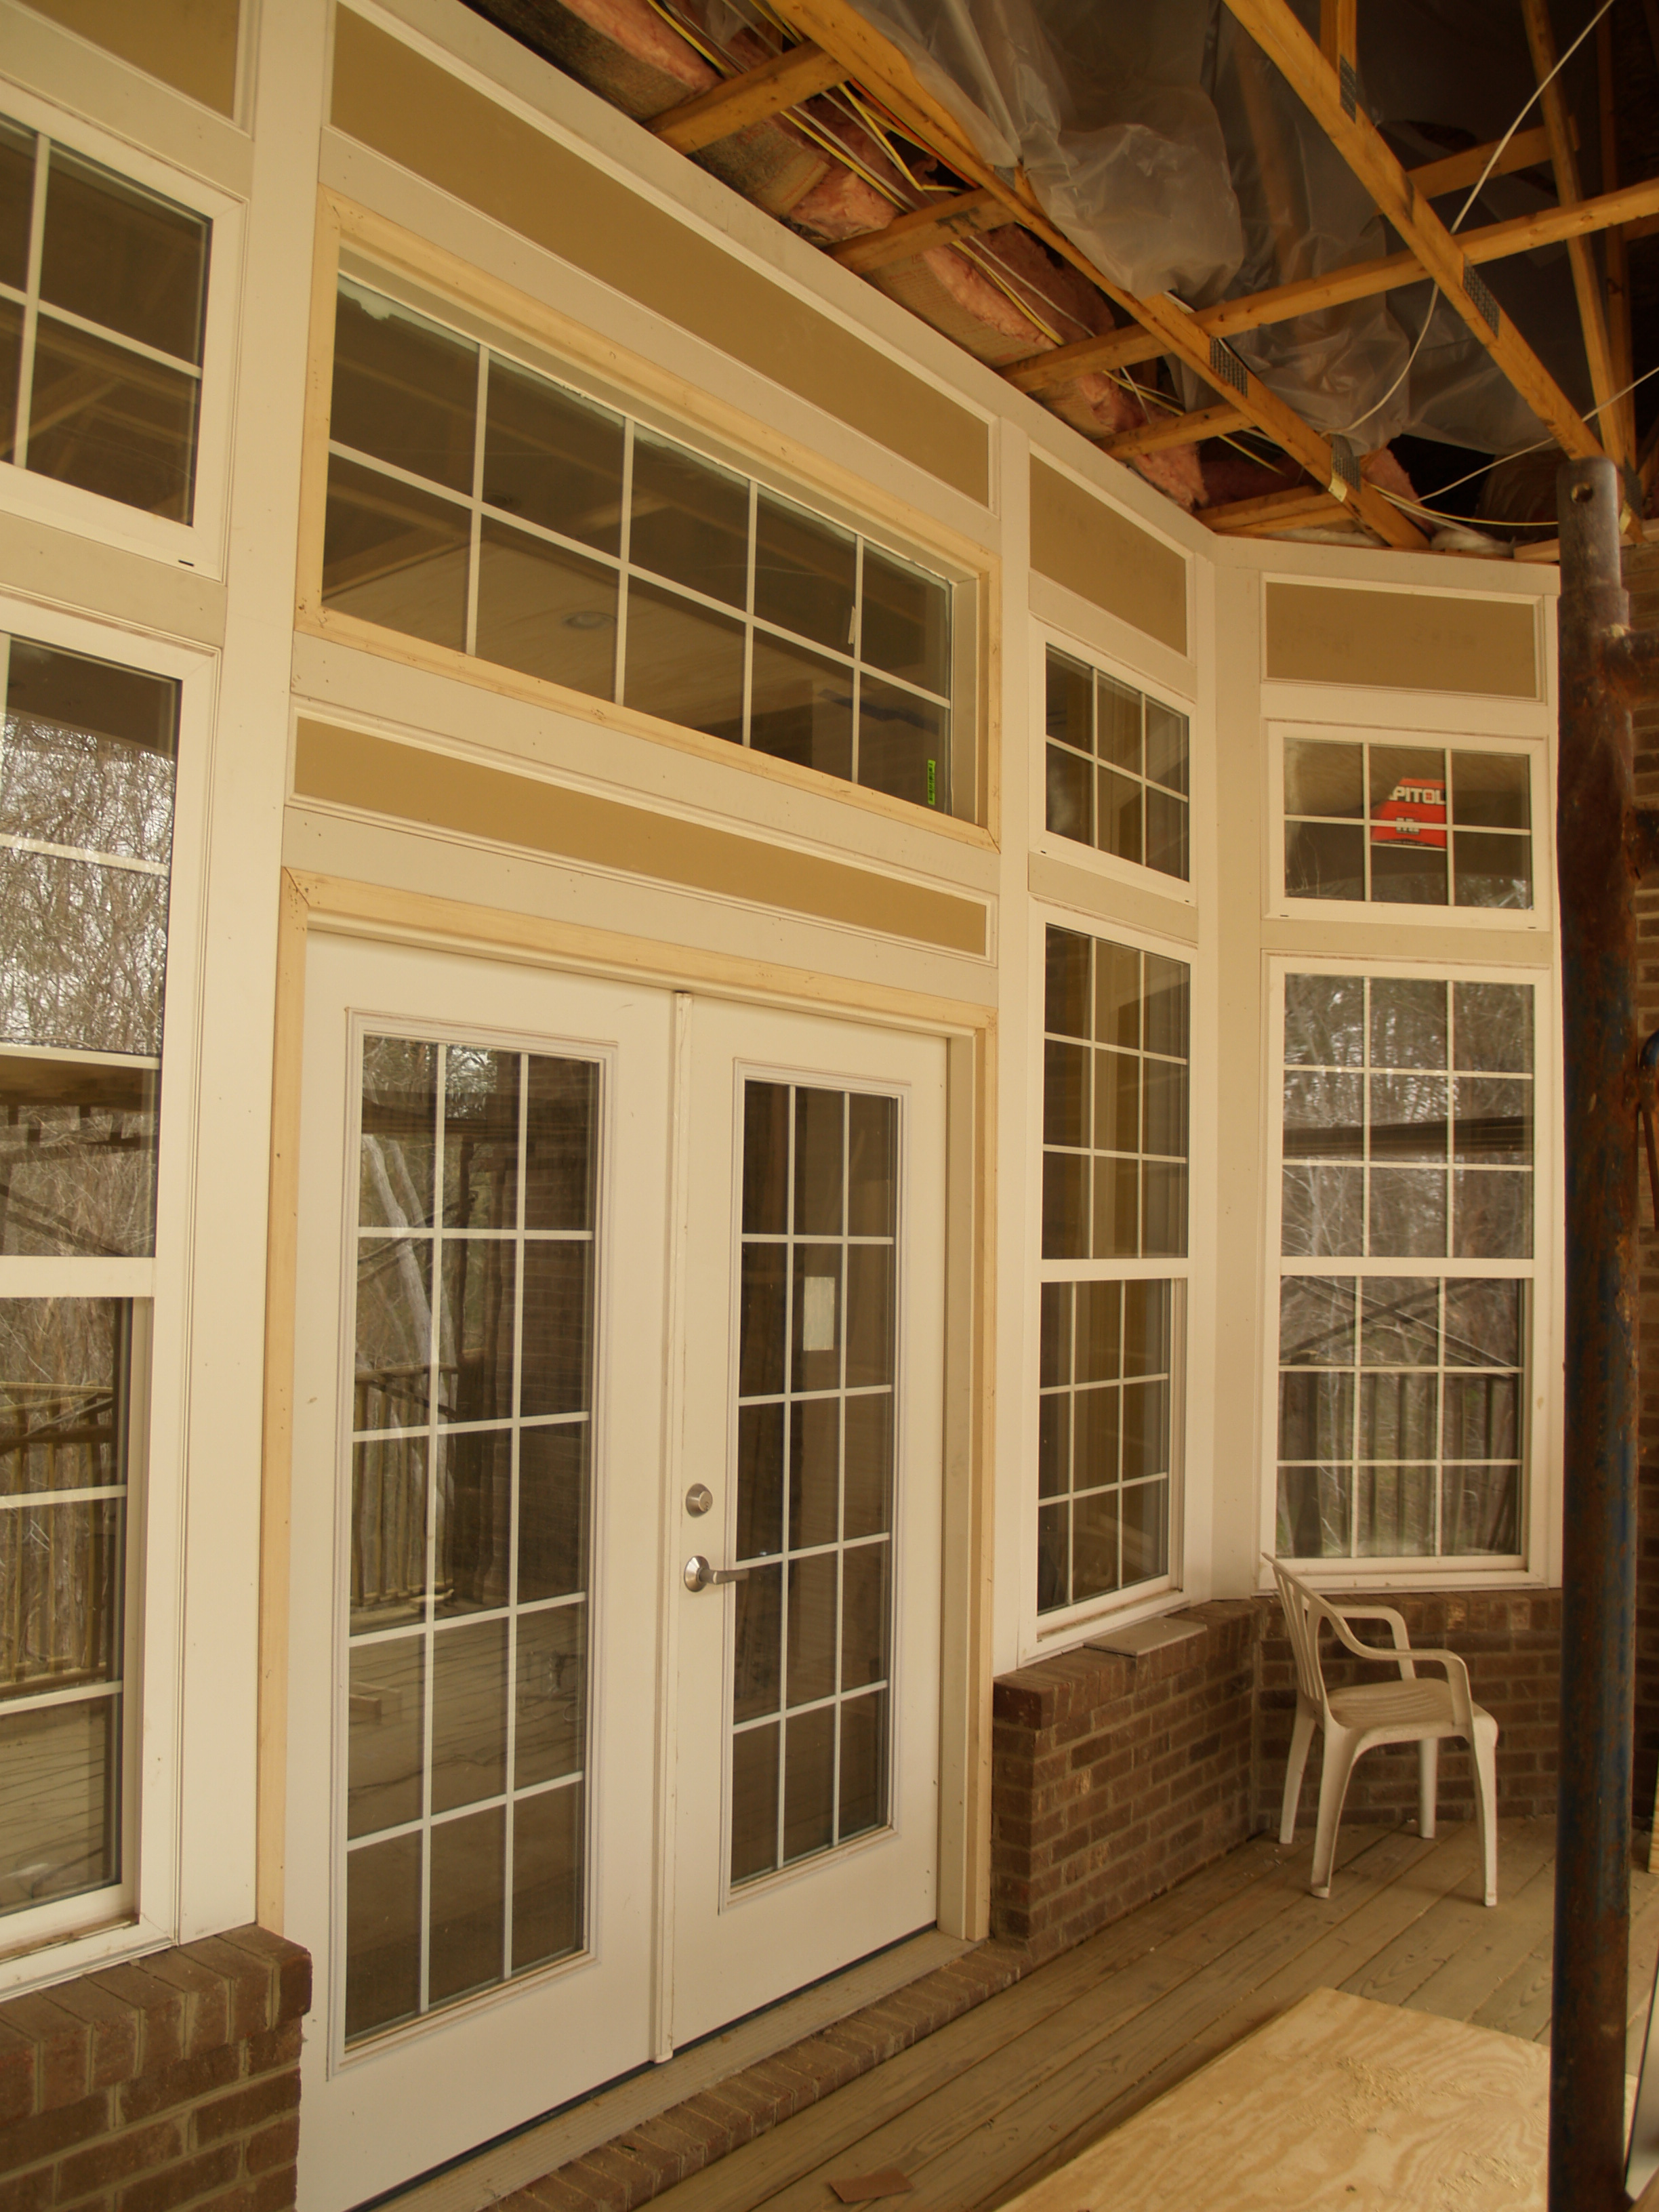 Pond rd. rear of house after trim.jpg